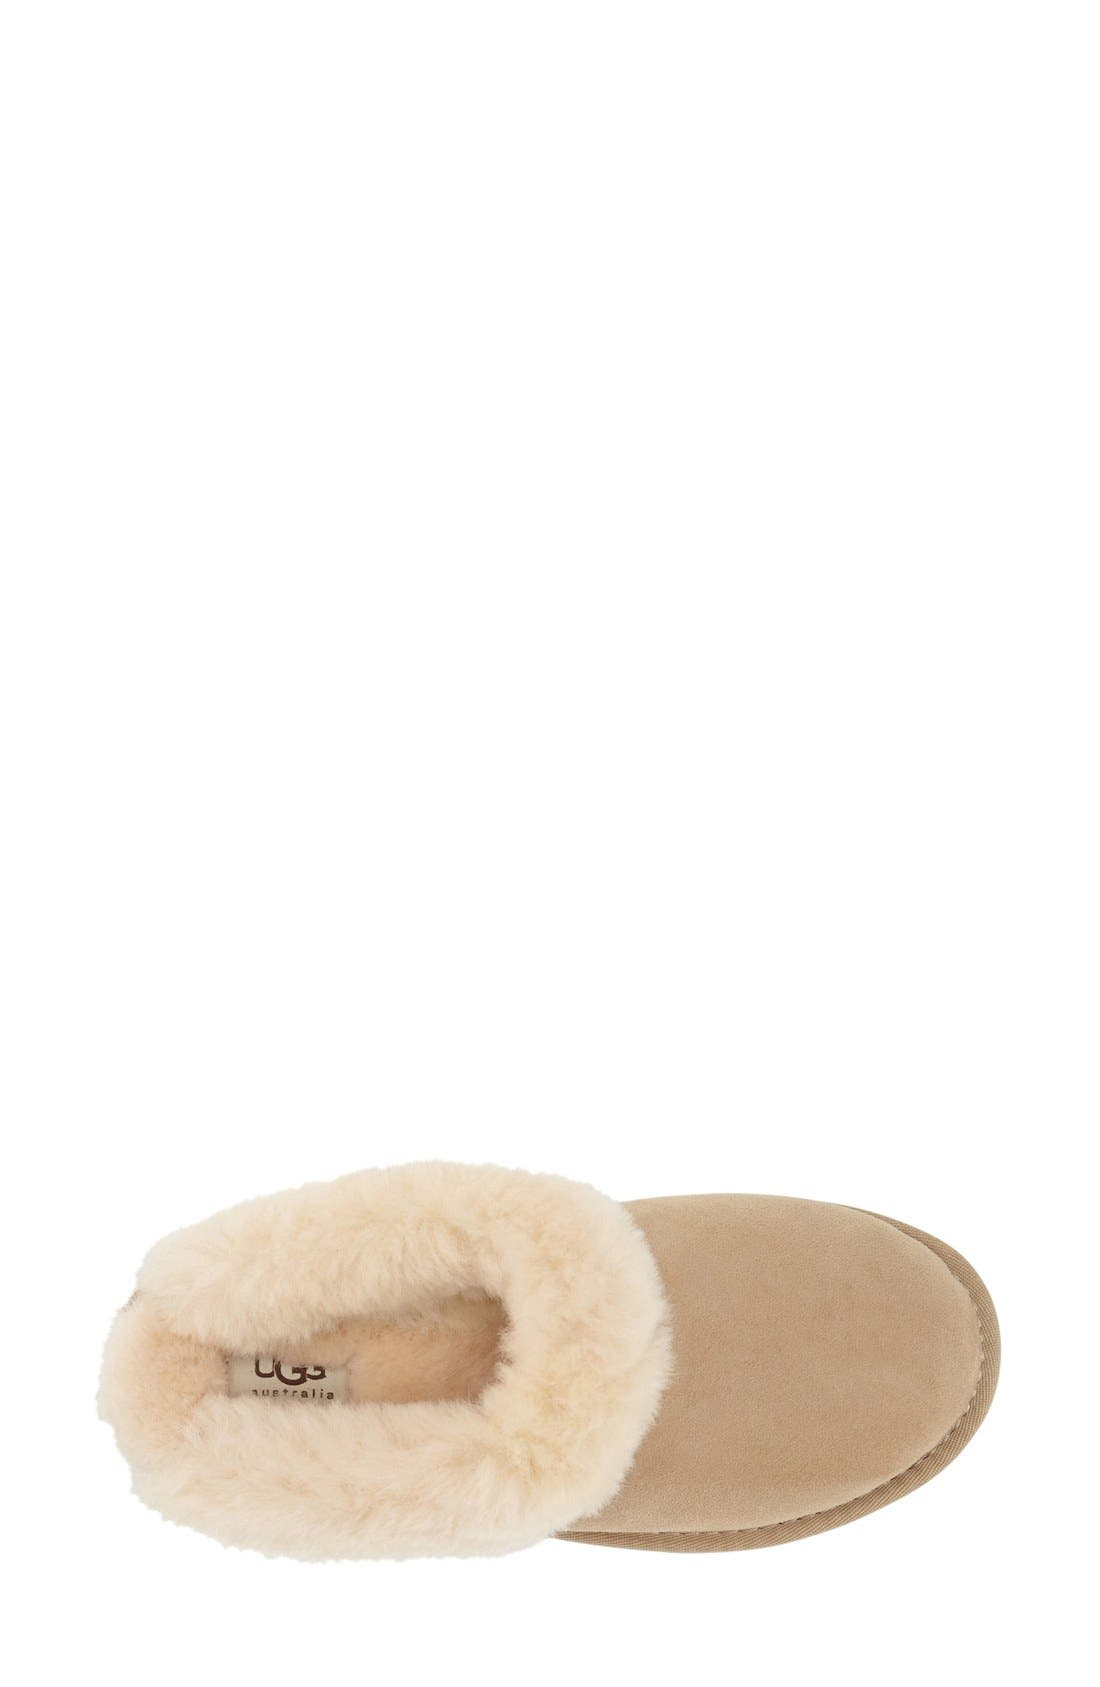 Alternate Image 3  - UGG® 'Cluggette' Genuine Shearling Indoor/Outdoor Slipper (Women)